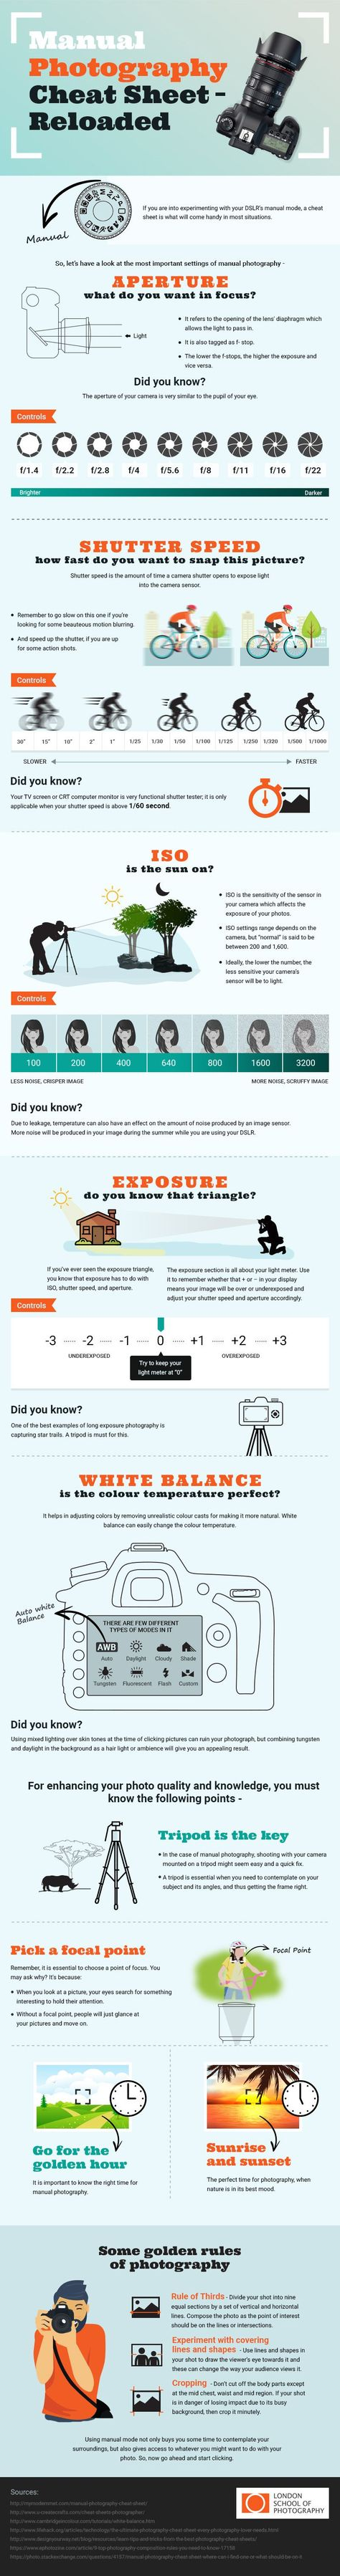 The Manual Photography Cheat Sheet Infographic